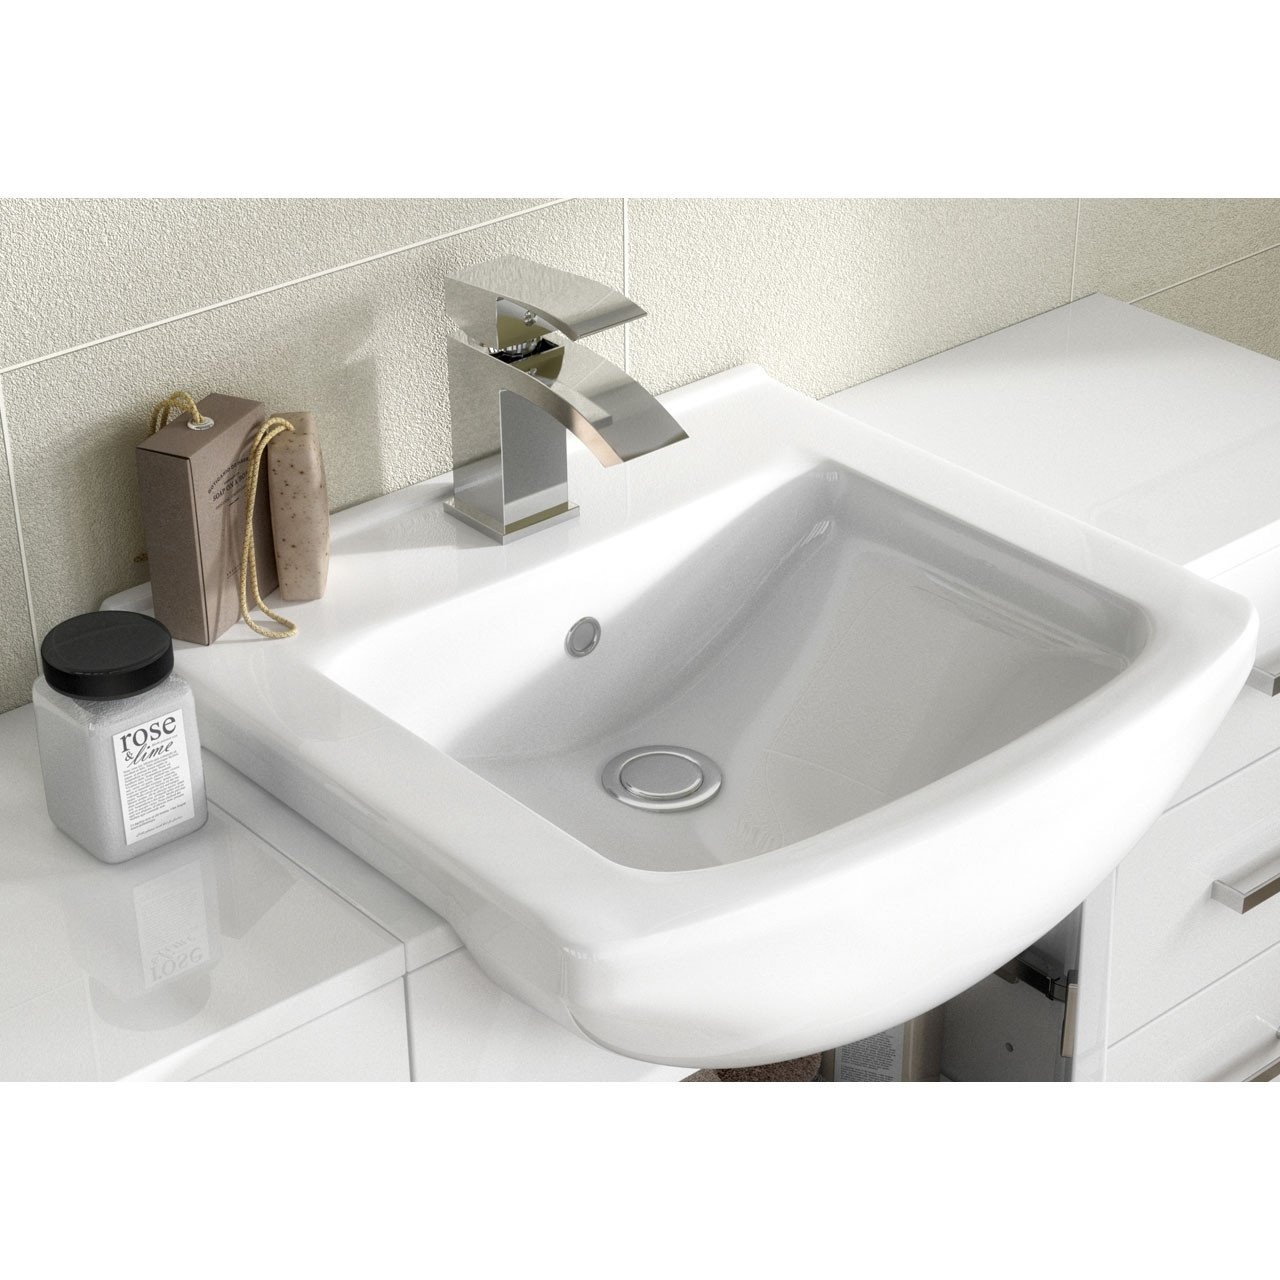 Nuie Mayford Gloss White 450mm Vanity Unit and Minimalist Basin with 1 Tap Hole - VTM450